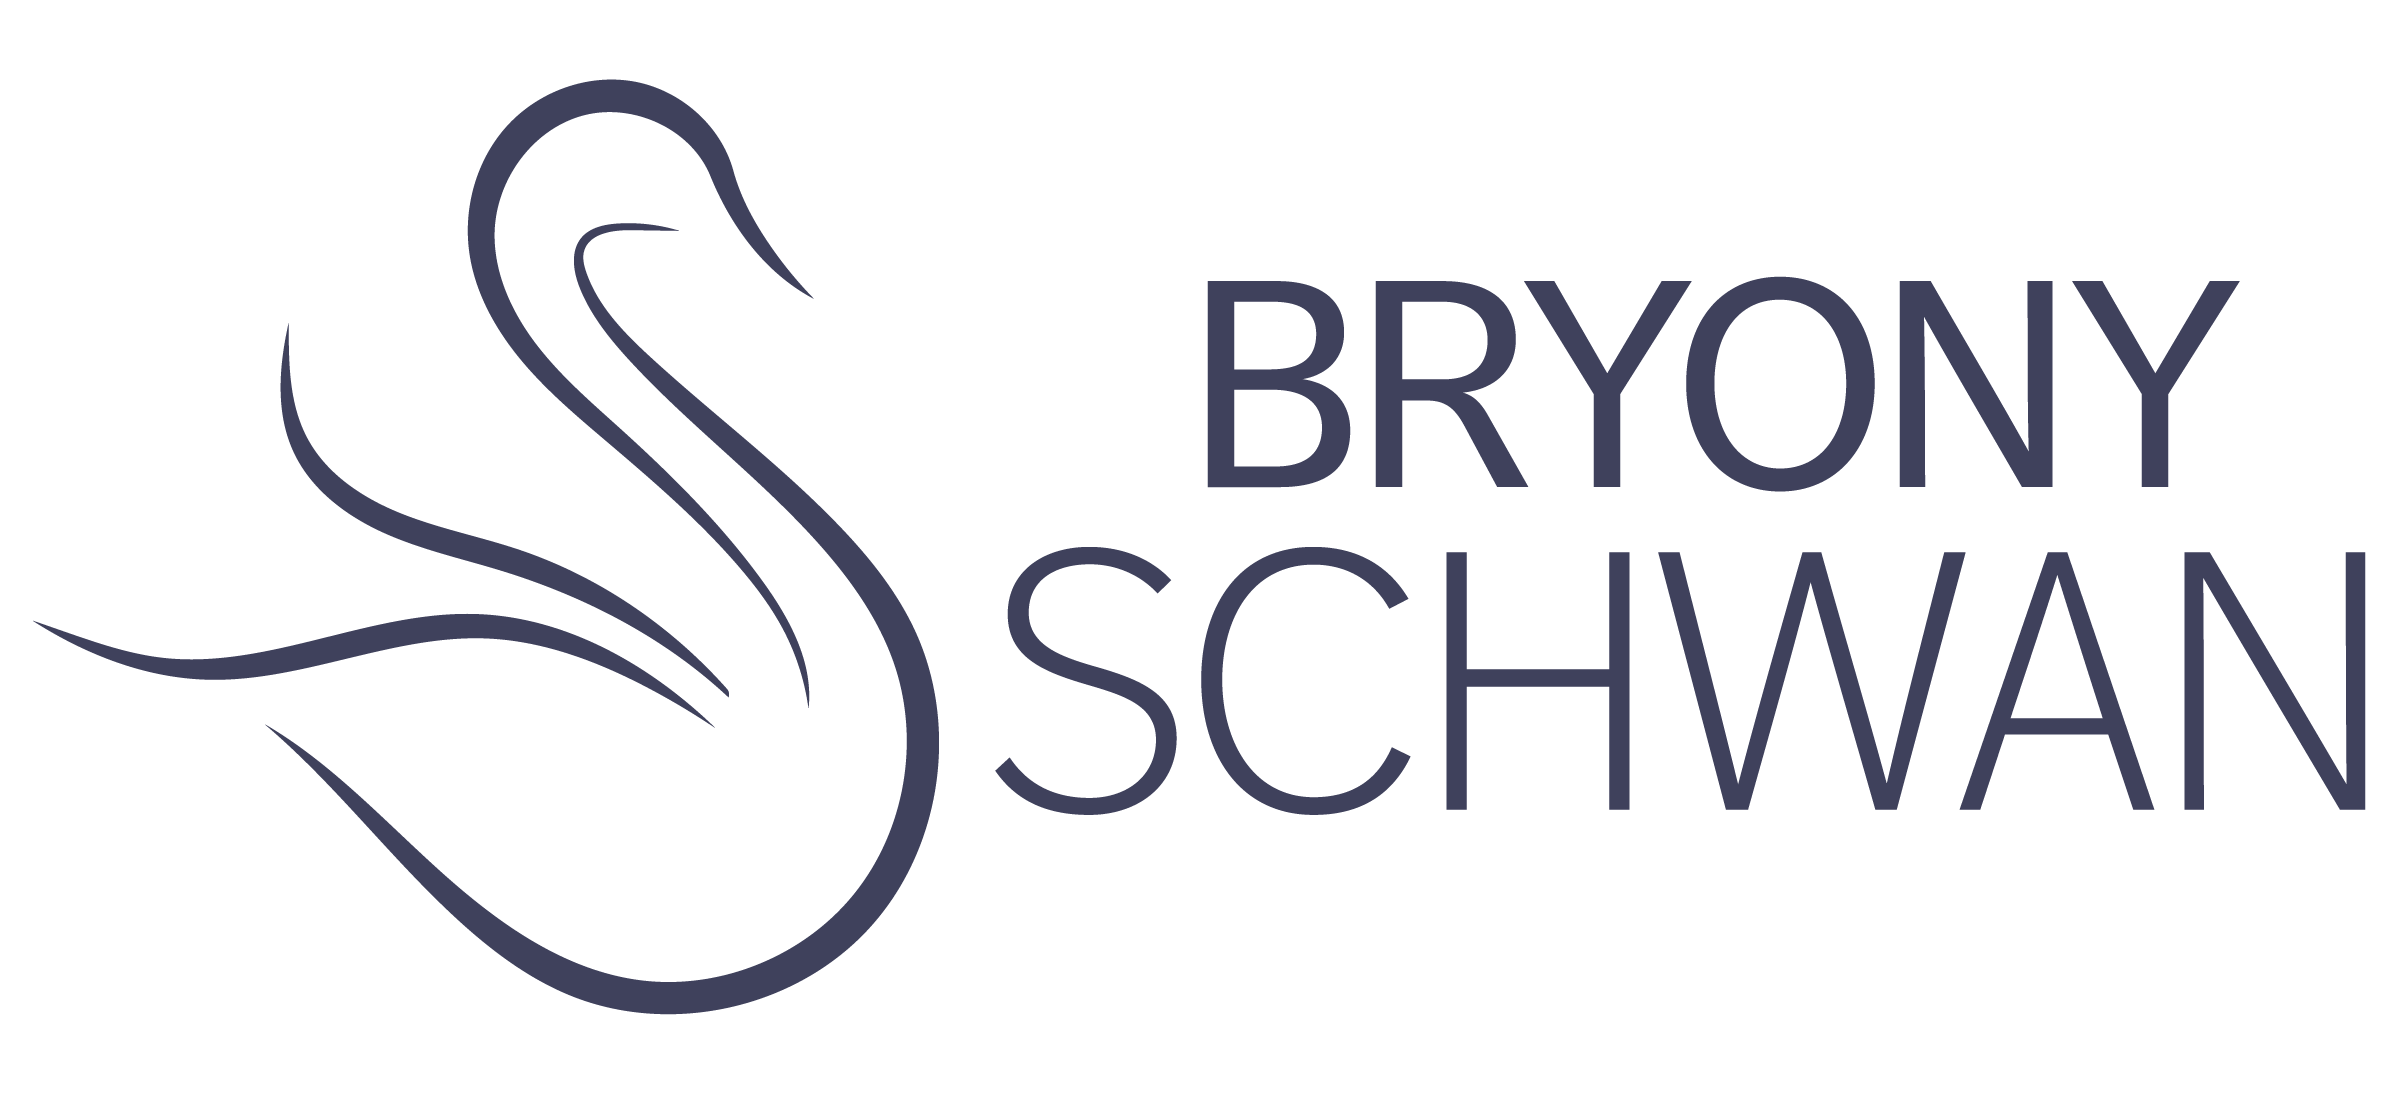 Bryony Schwan Consulting Missoula, Montana